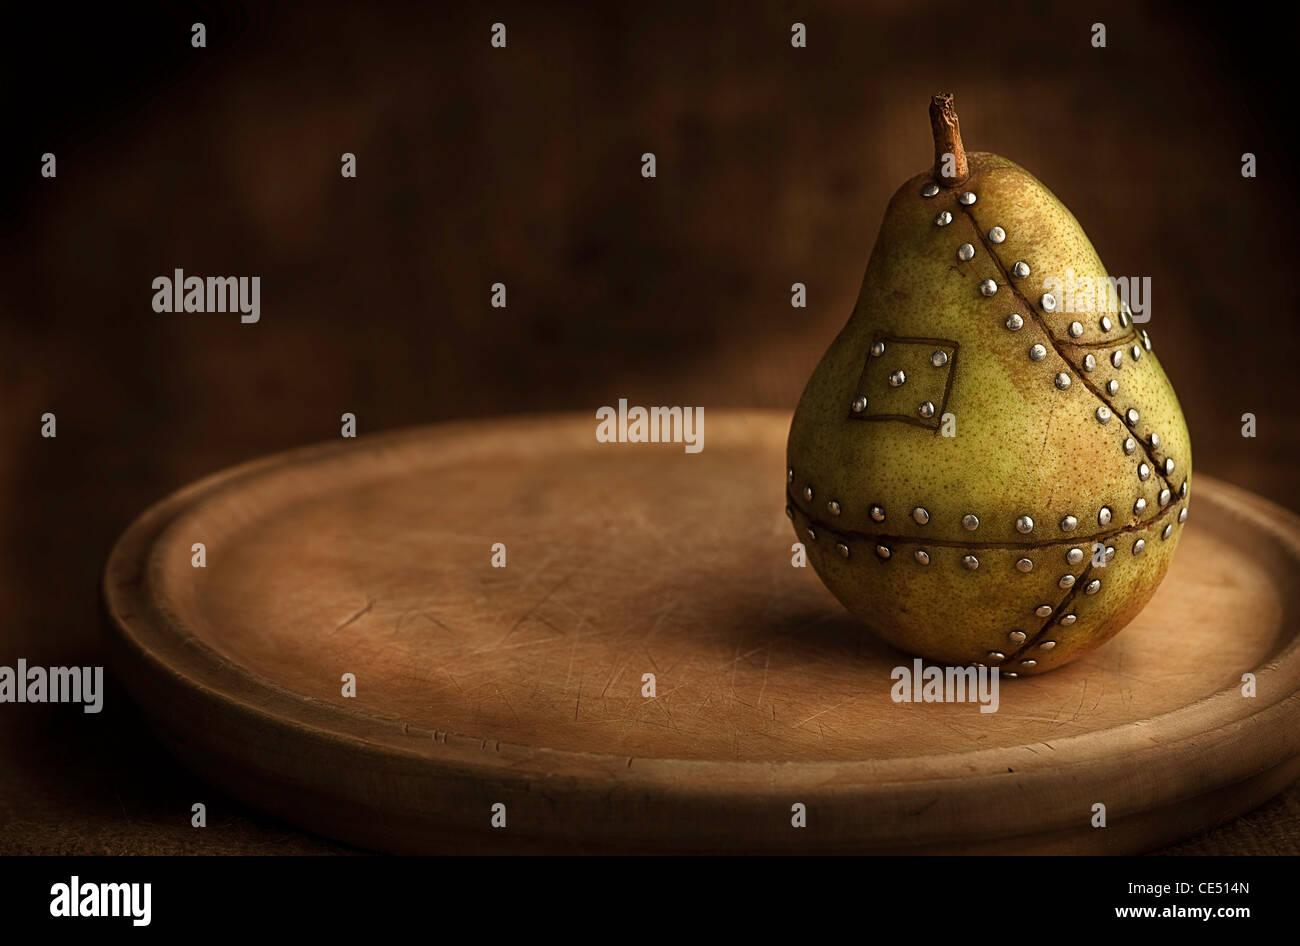 pear manipulated fruit with nails holding it together concept for genetic manipulation - Stock Image